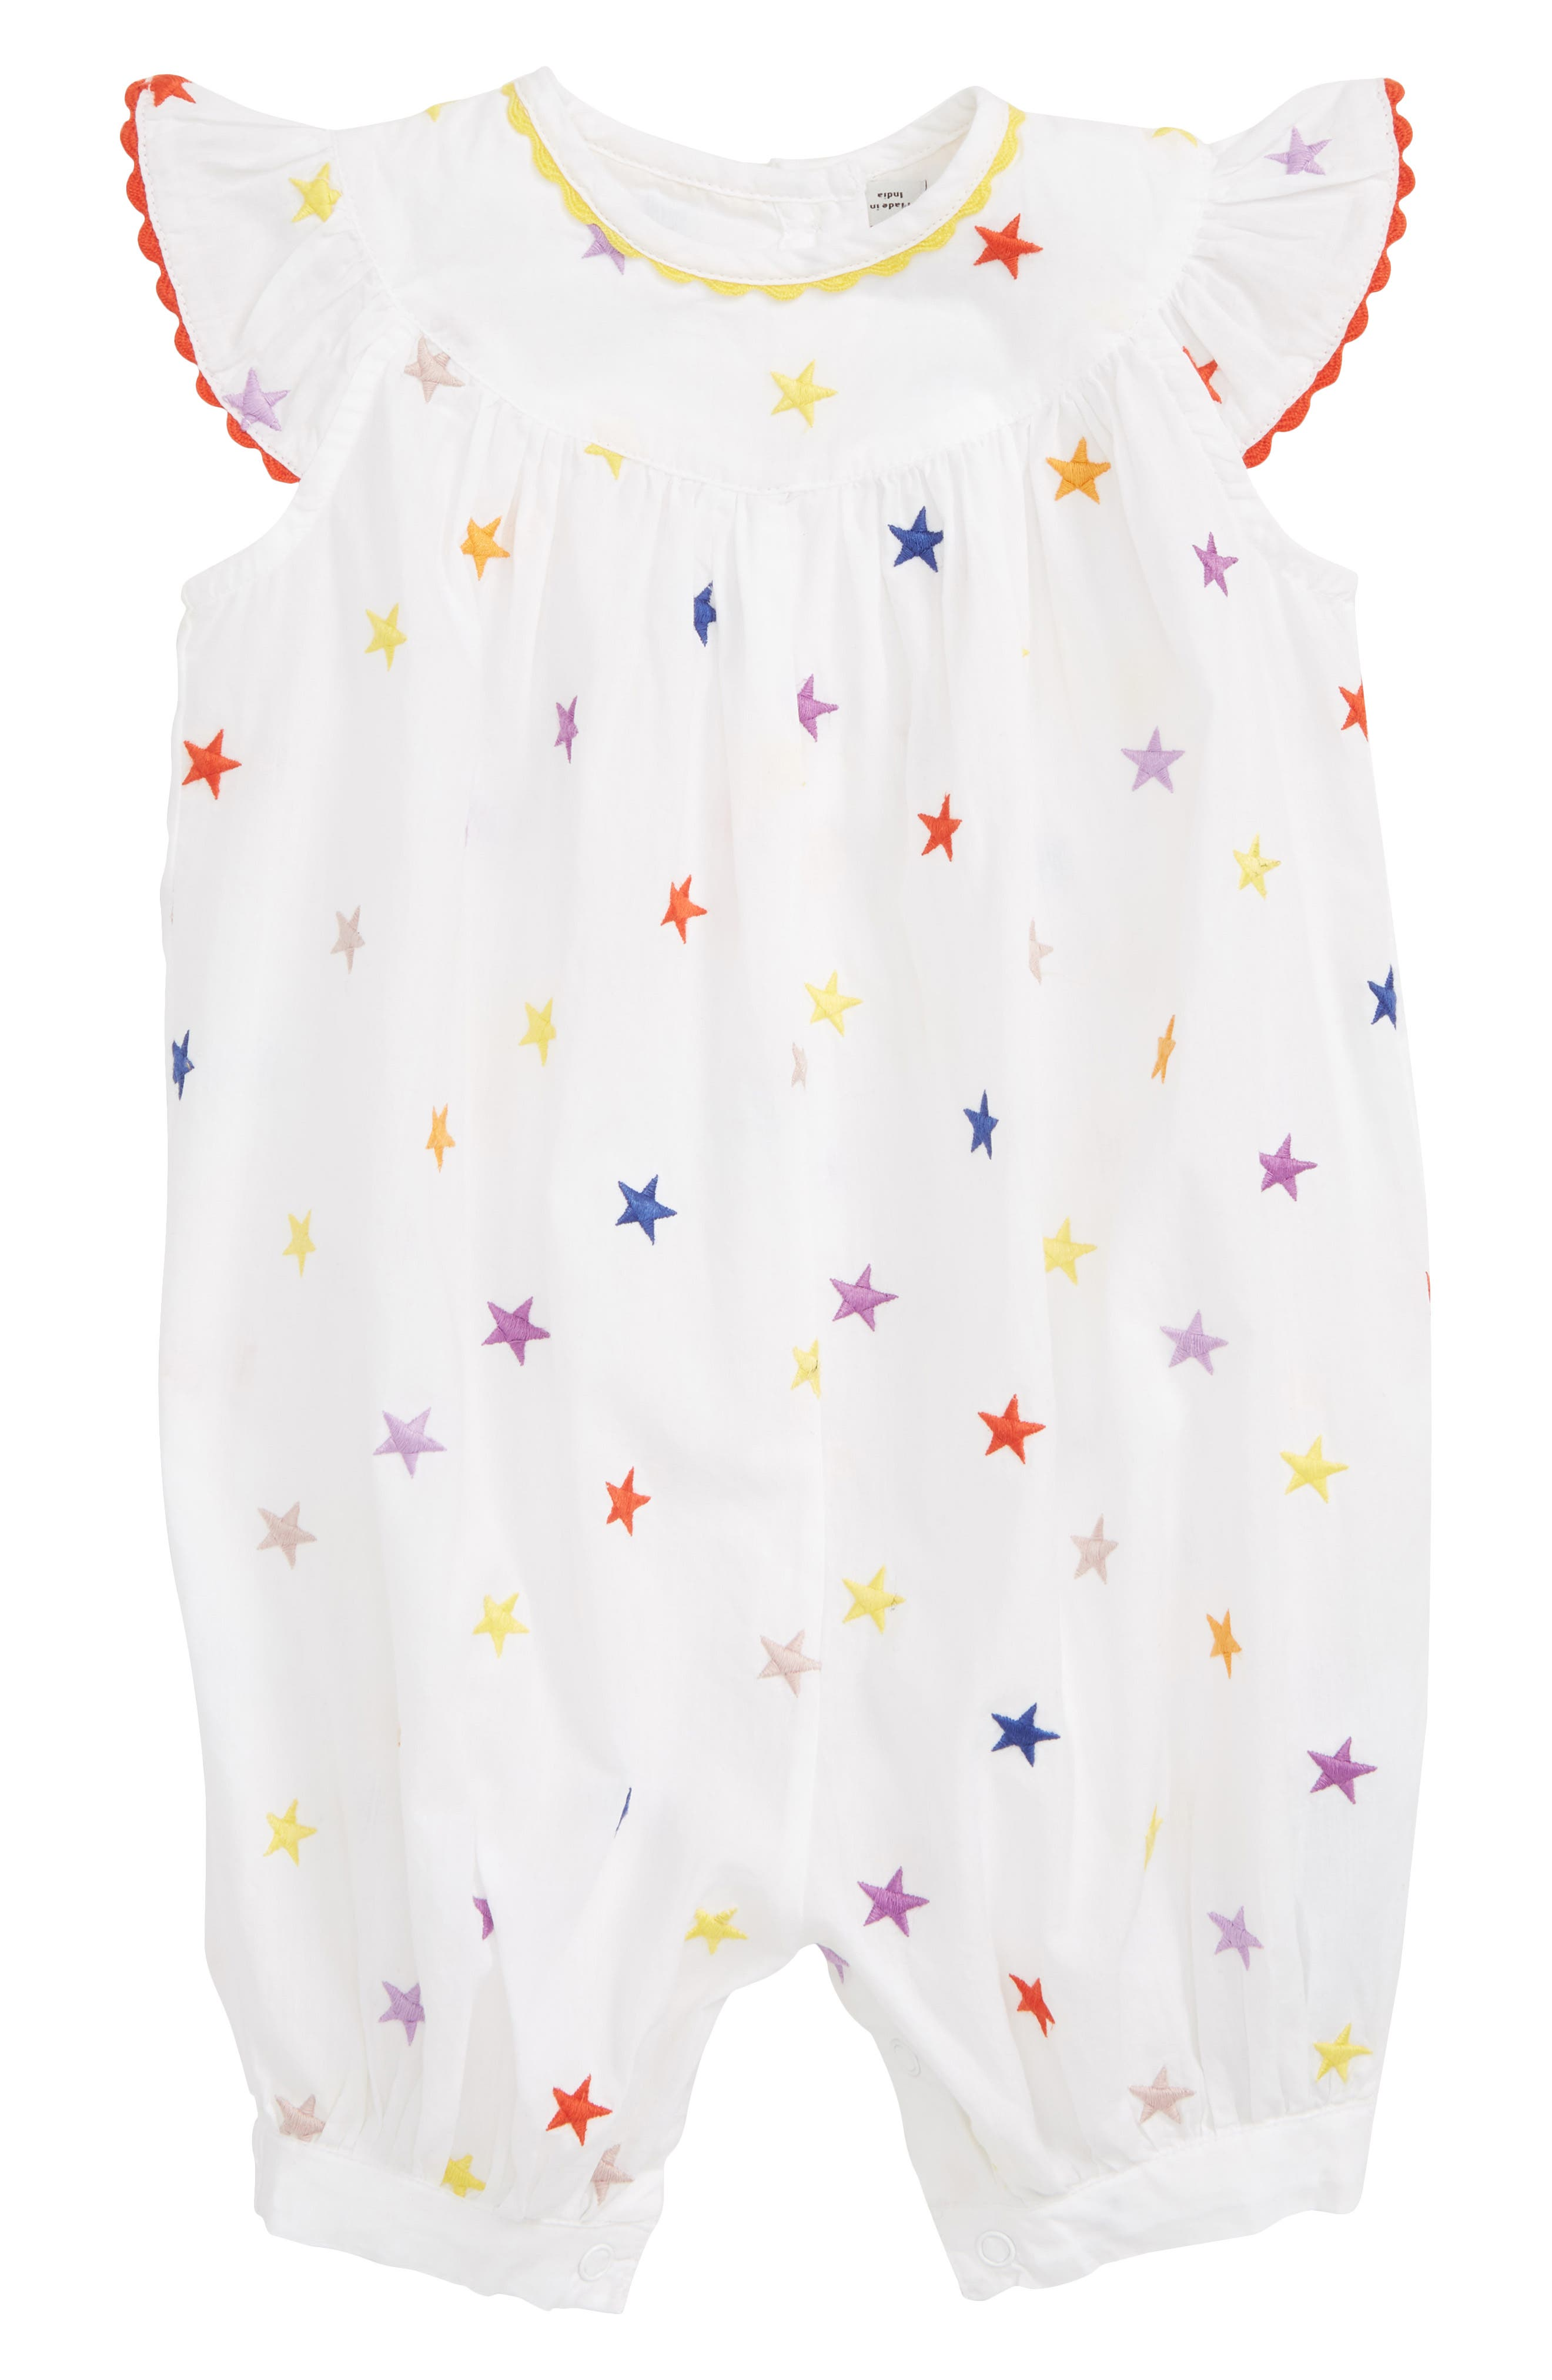 STELLA MCCARTNEY KIDS Stella McCartney Embroidered Stars Romper, Main, color, 9094 WHITE